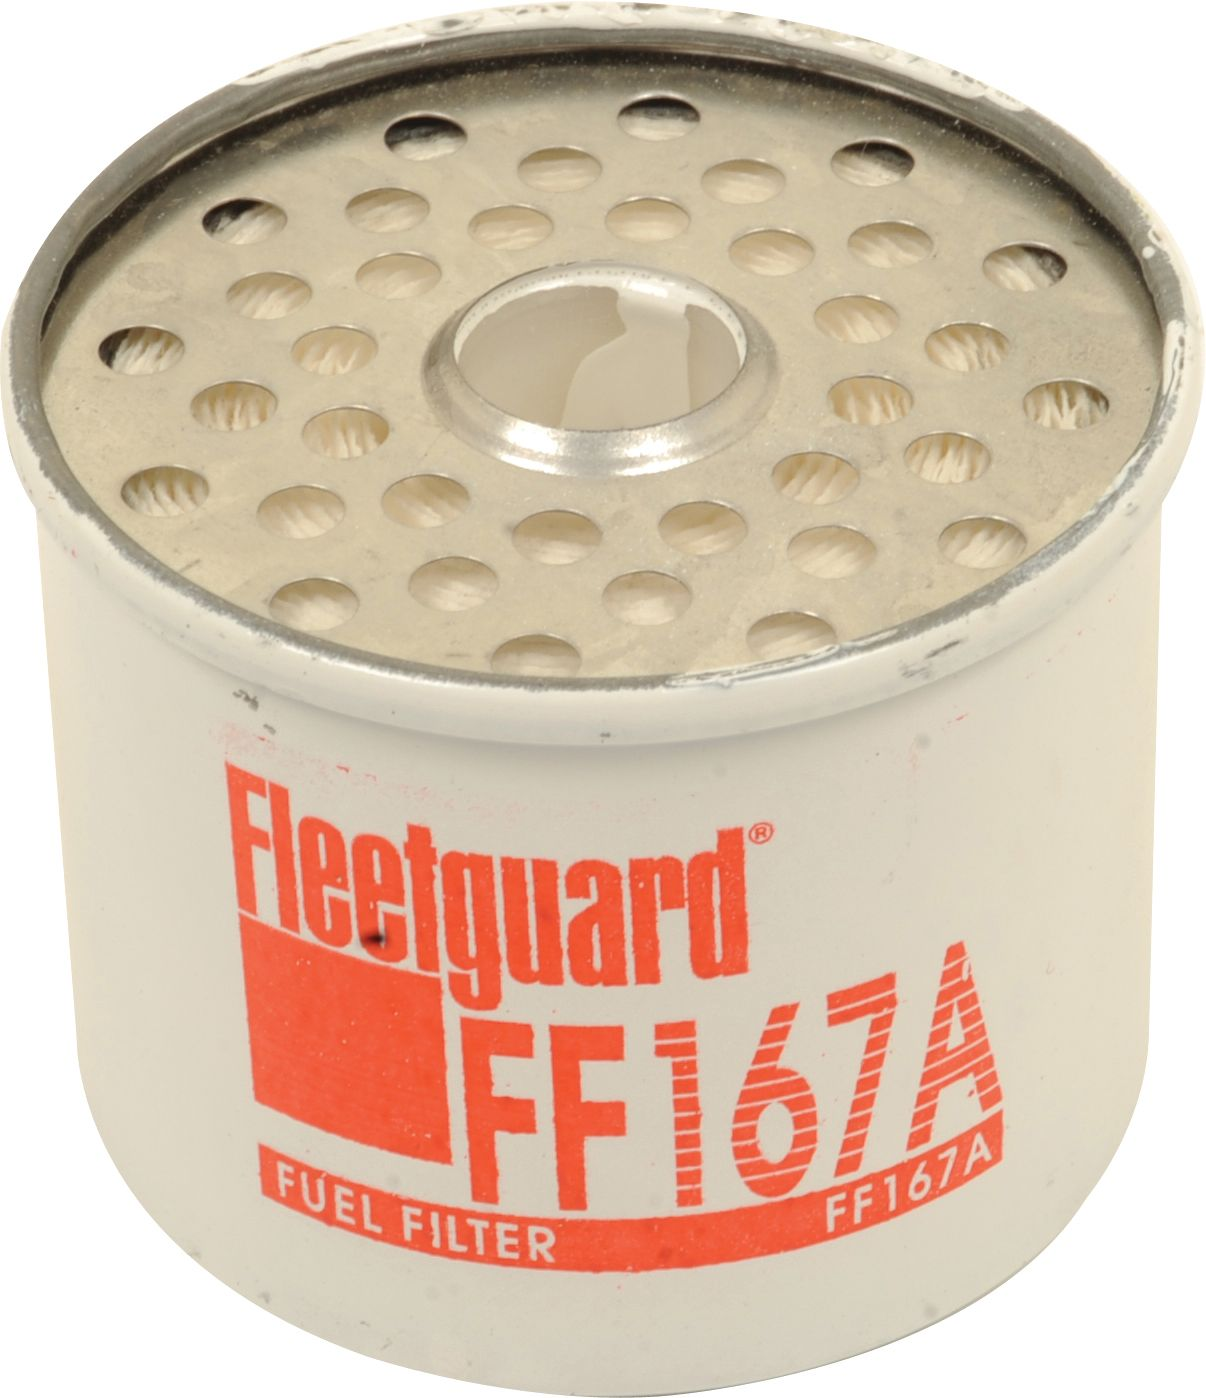 LAMBORGHINI FUEL FILTER FF167A 109024